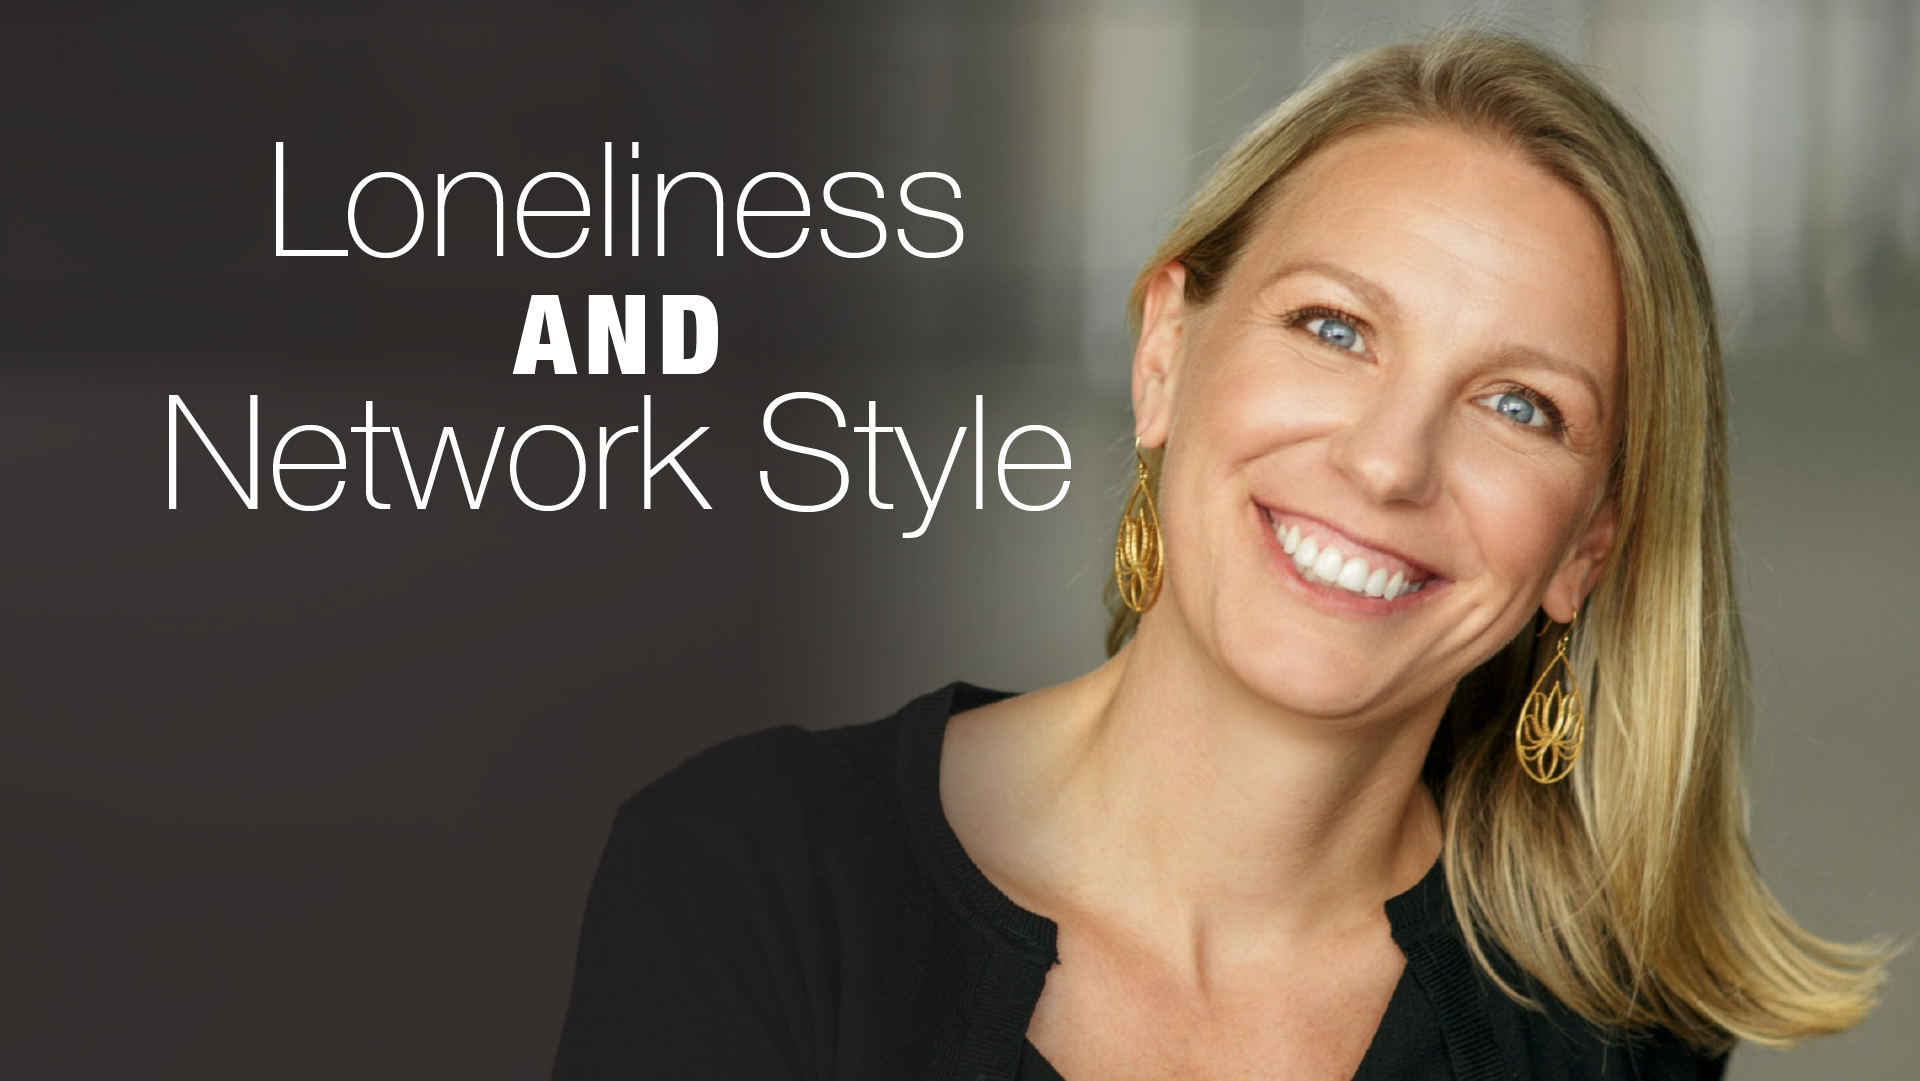 Loneliness and Network Style - Header Image